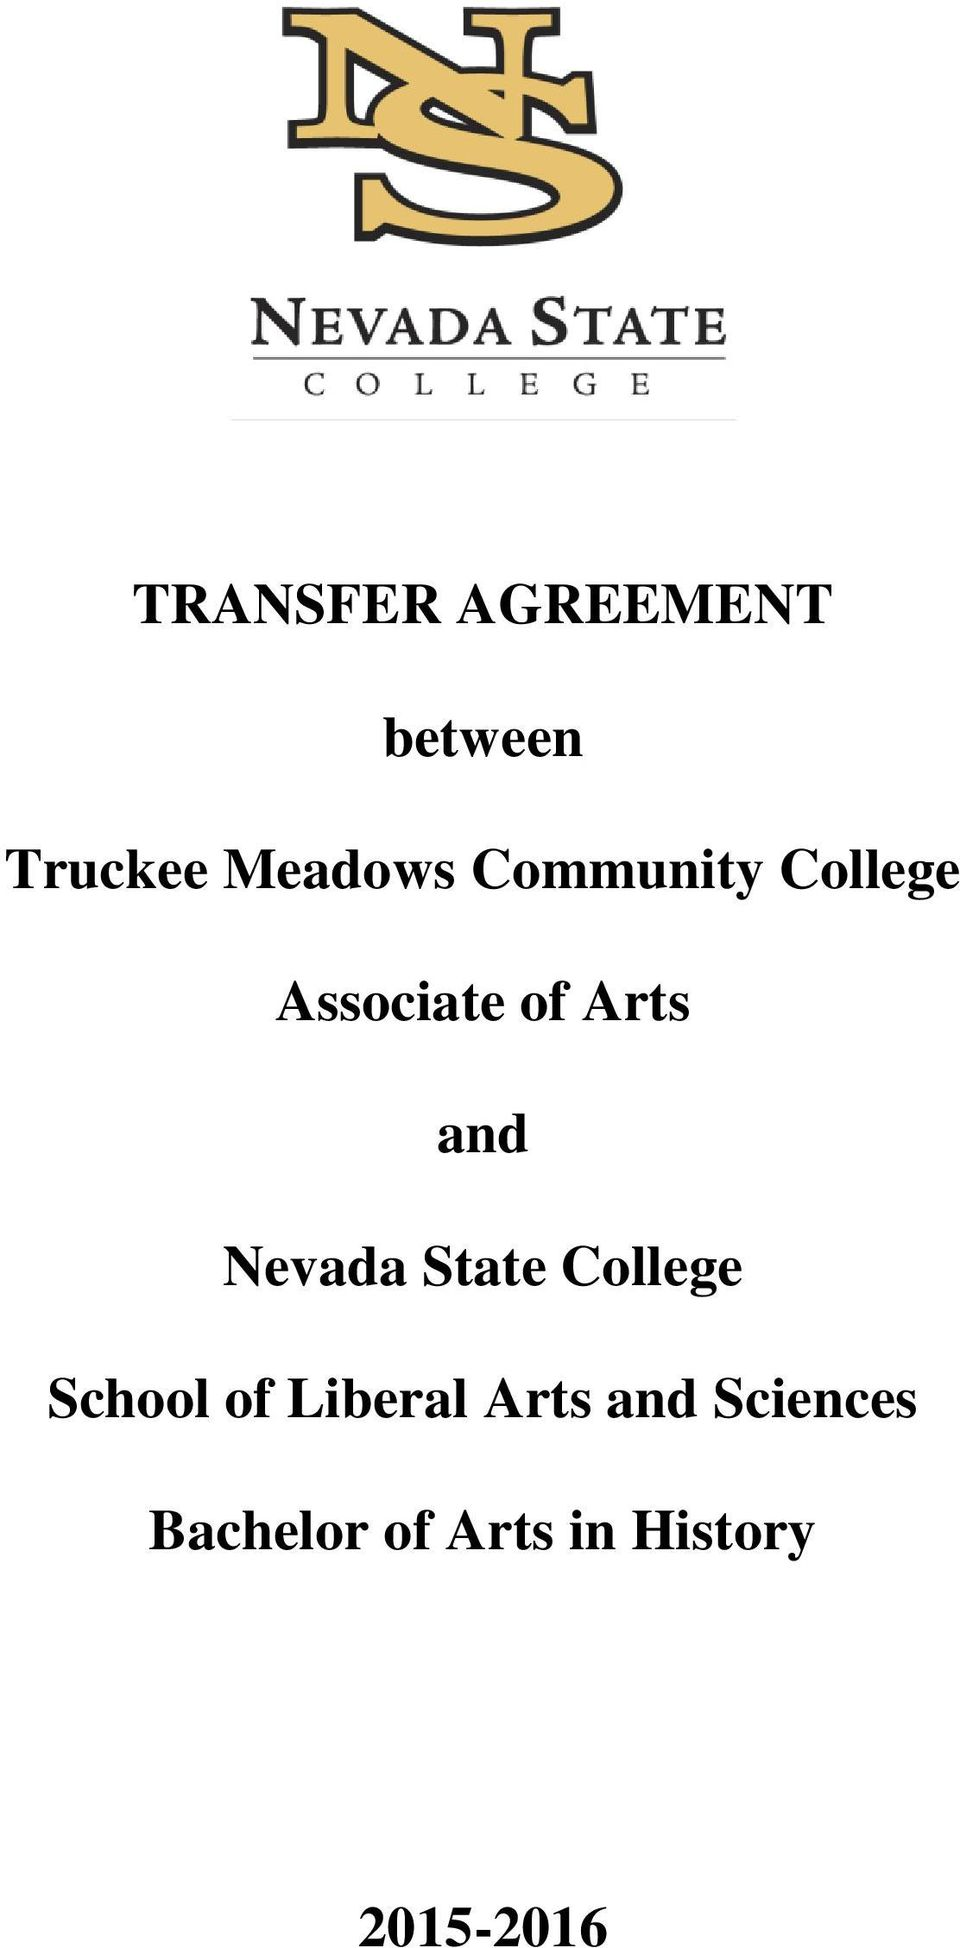 Nevada State College School of Liberal Arts